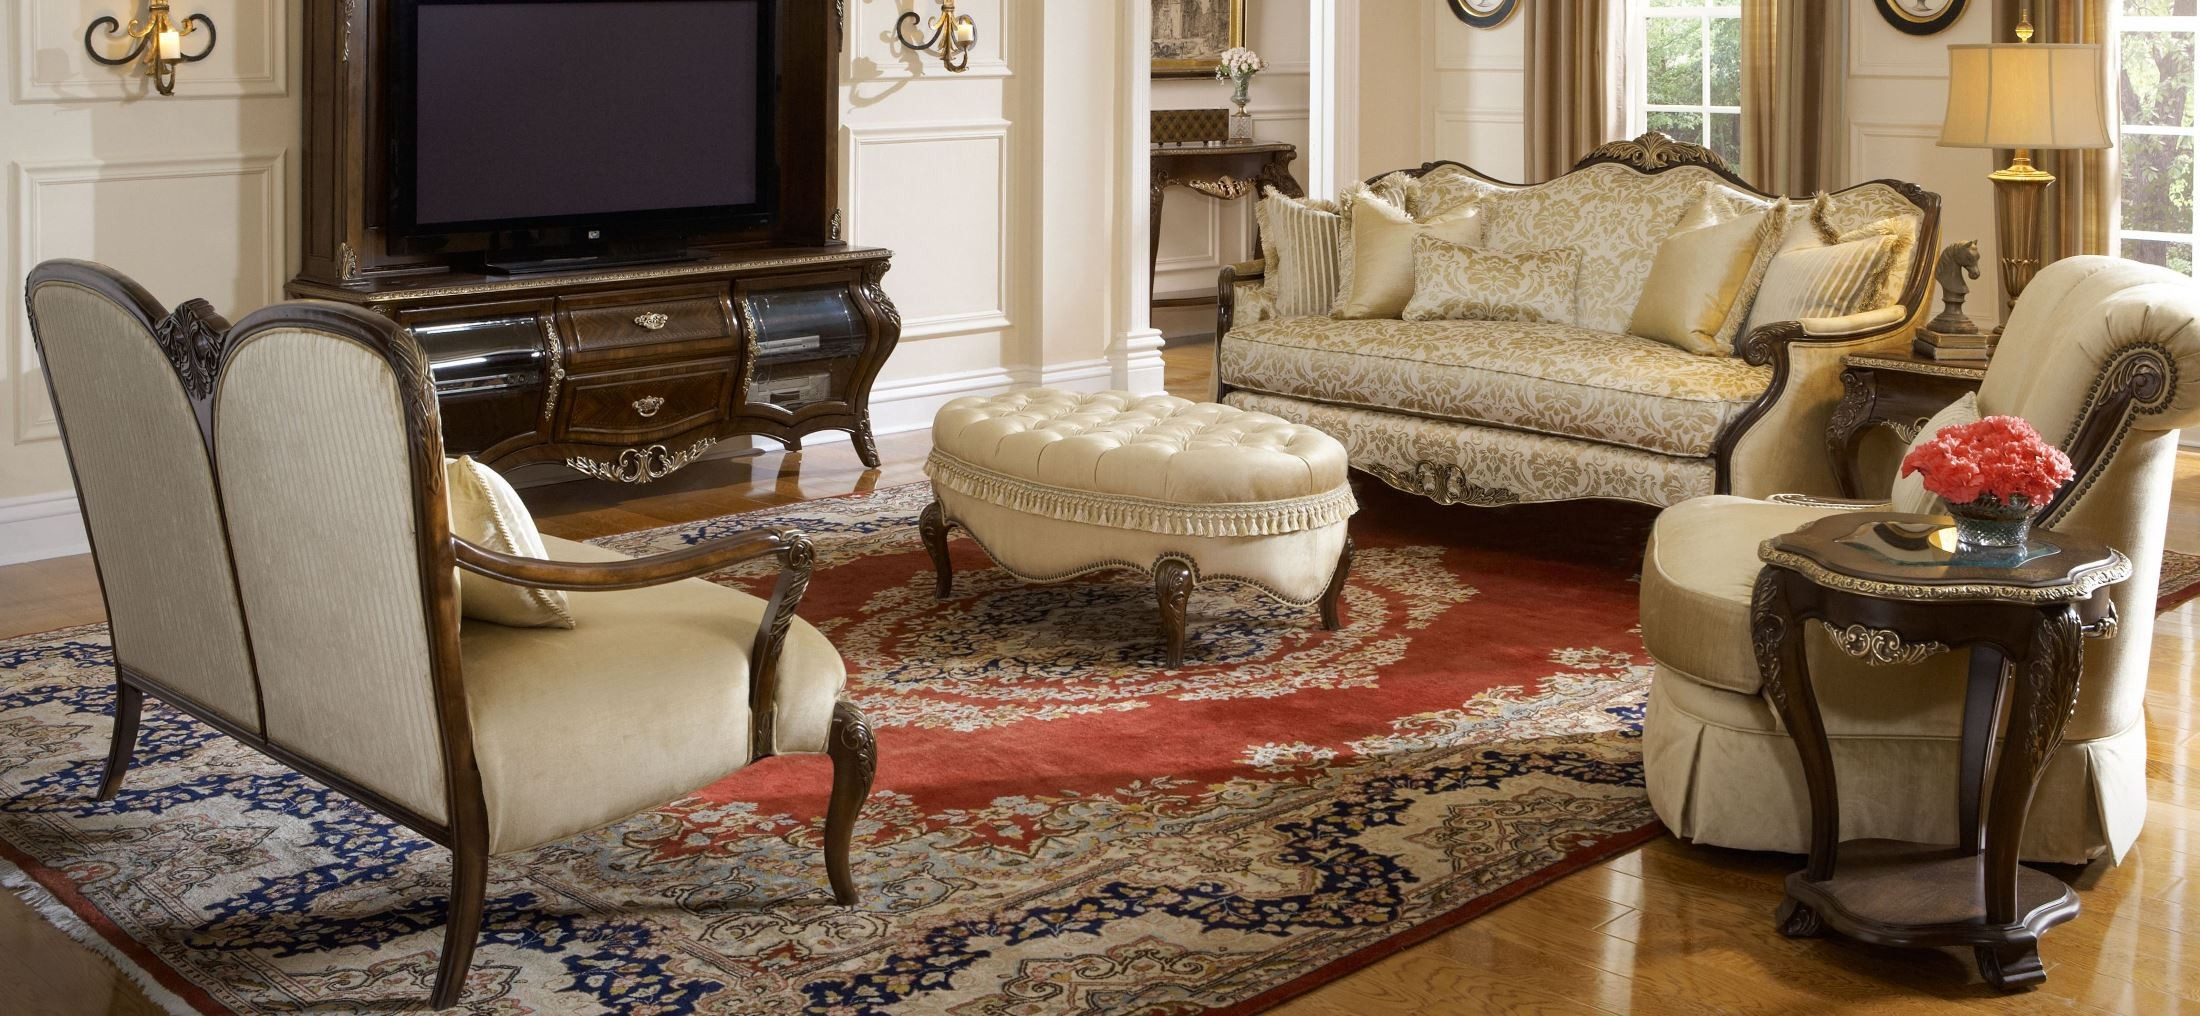 imperial court living room set from aico 798 coleman